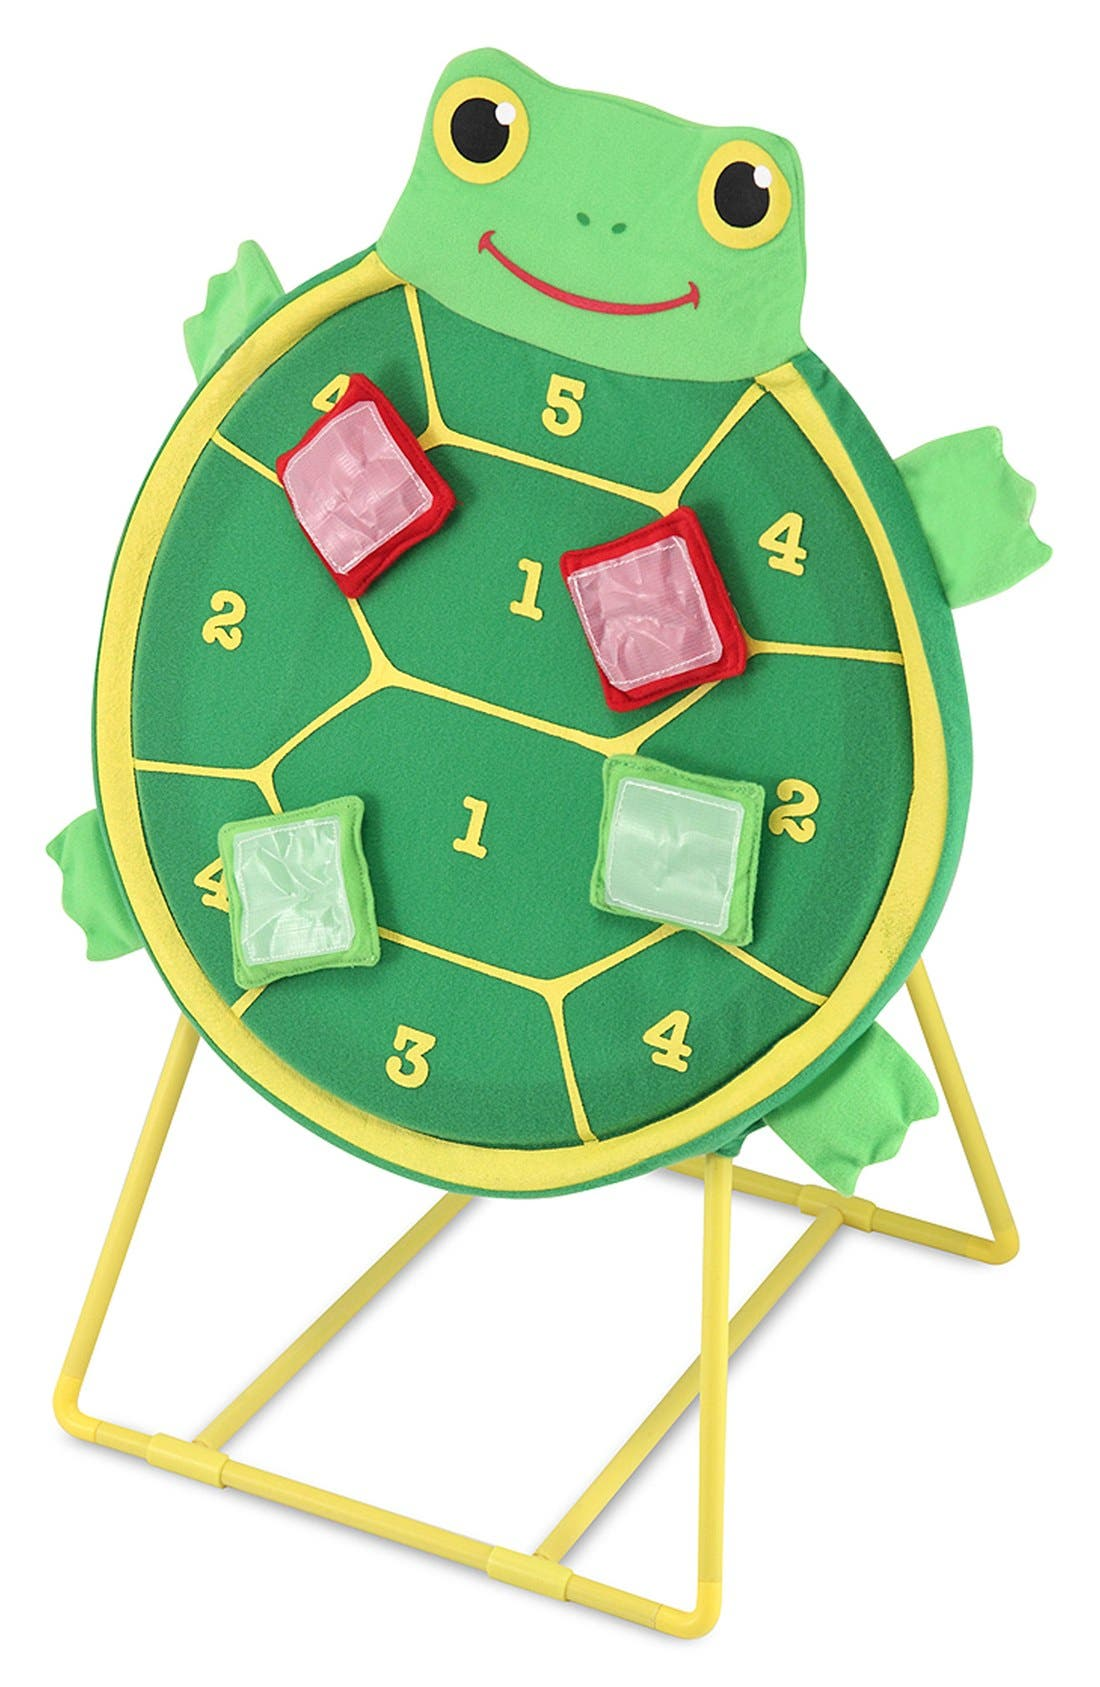 'Tootle Turtle' Target Game,                         Main,                         color, Green